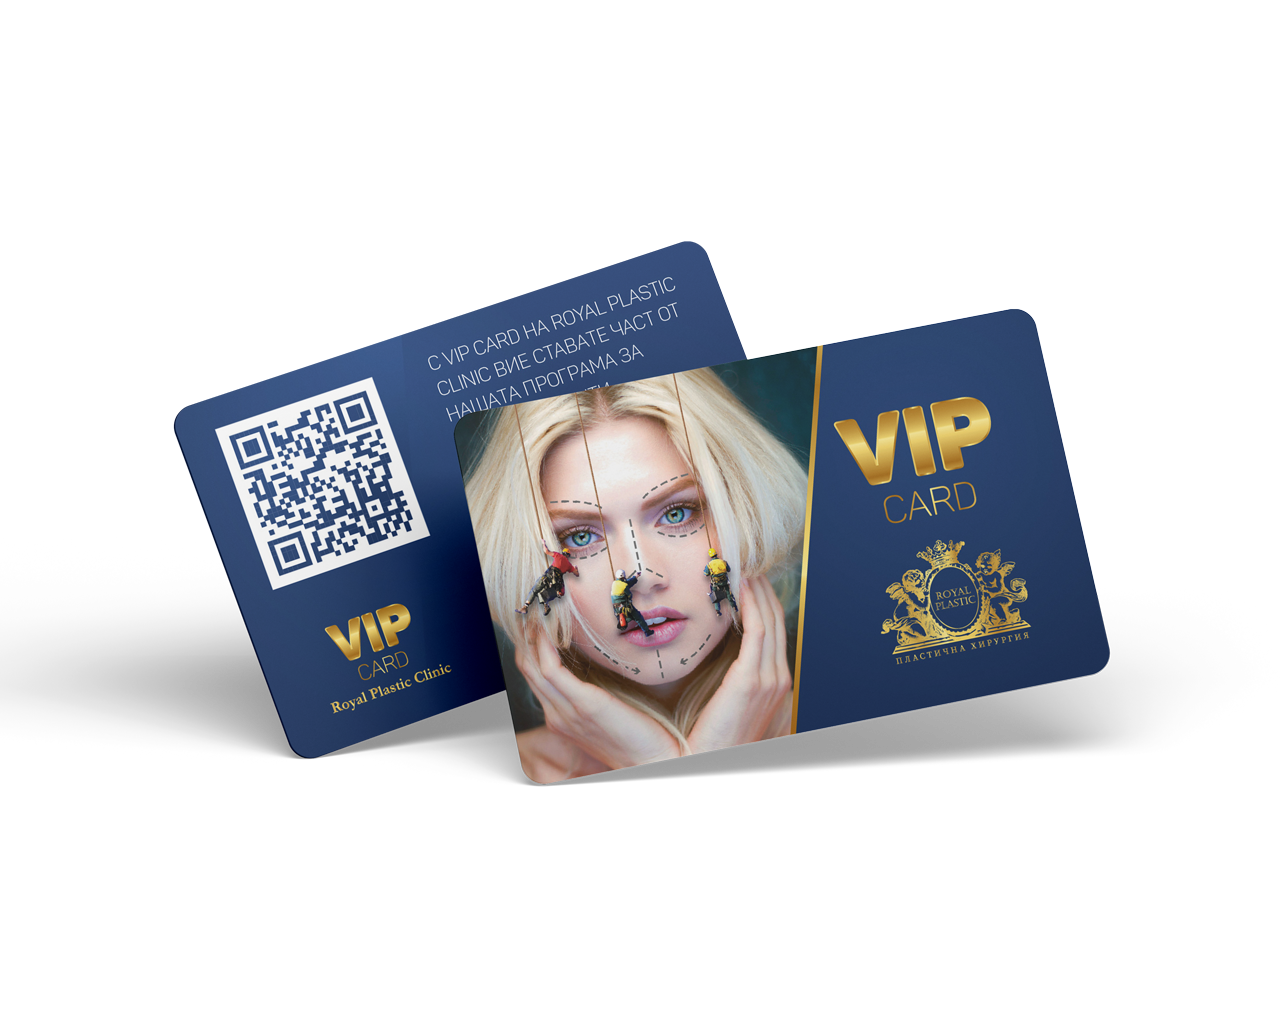 vip-card-royal-plastic-clinic–2